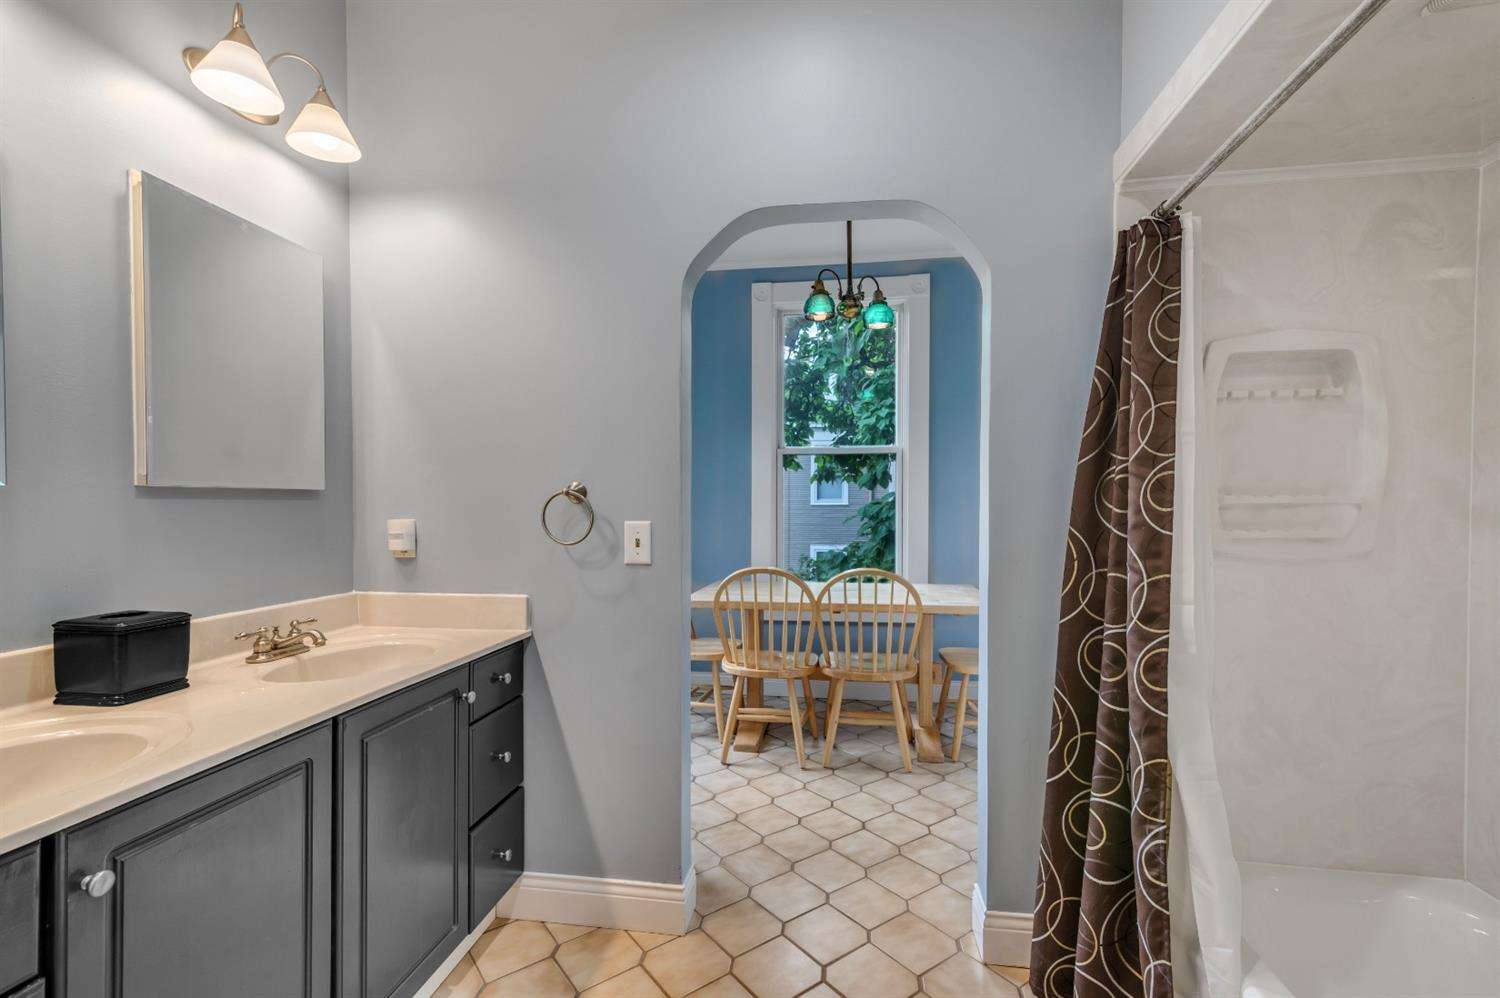 Shared bath for 2 bedrooms on 2nd floor includes a dressing room or currently used as a craft room.  Perfect for those messy projects!